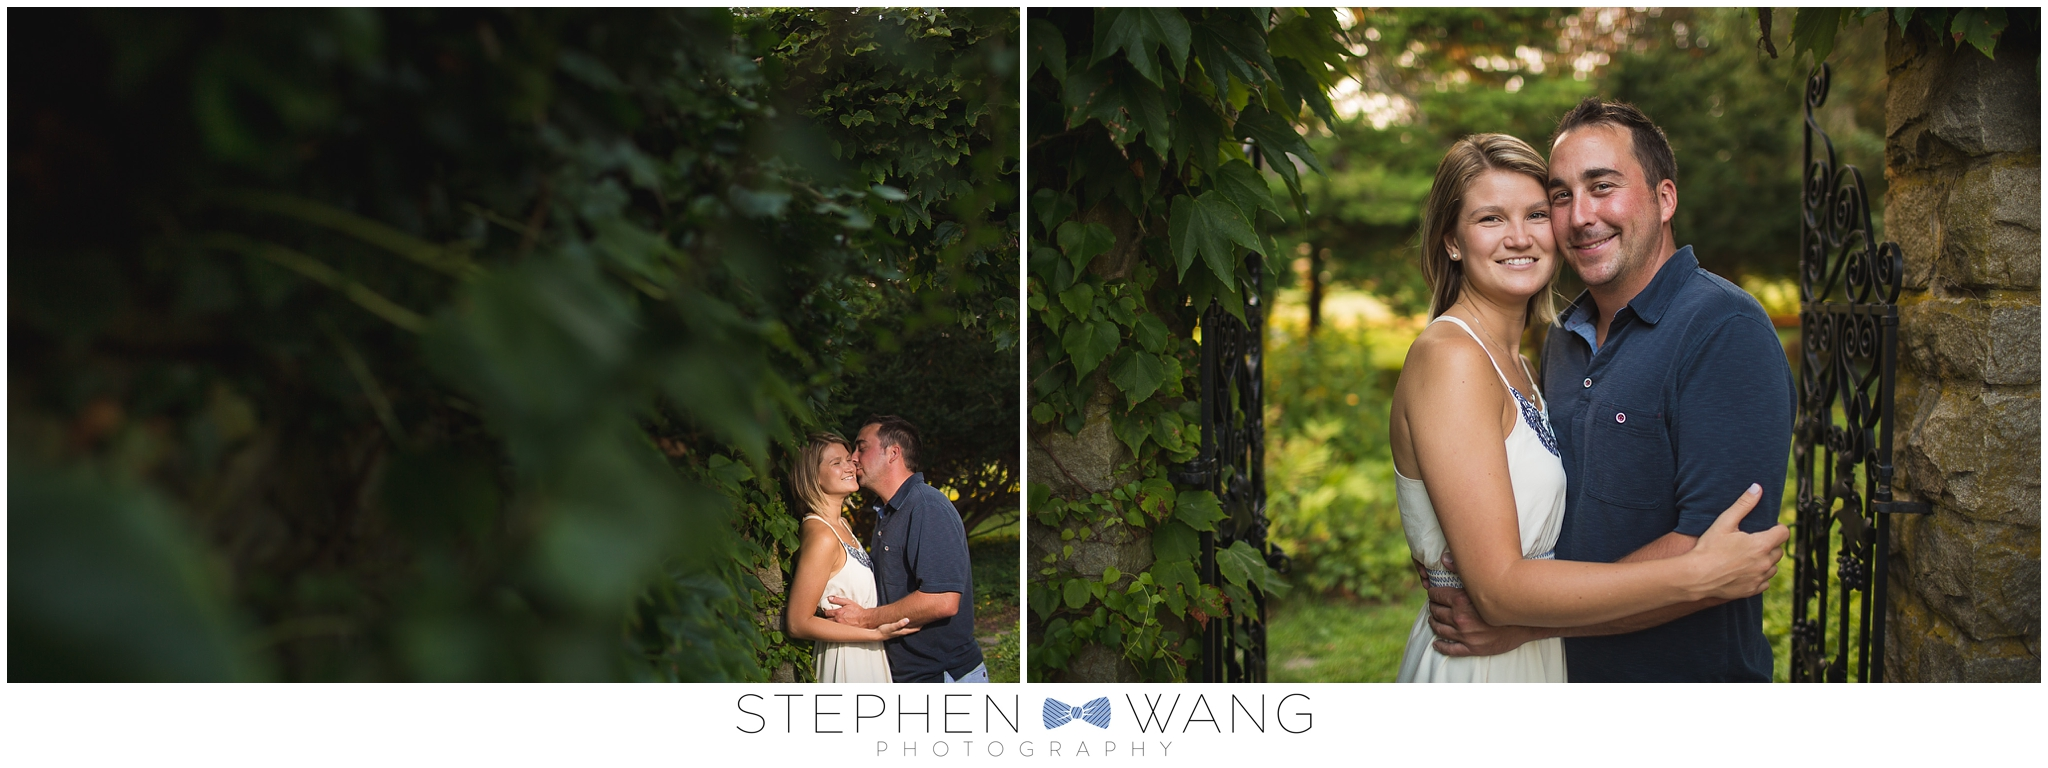 stephen wang photography connecticut wedding photographer harkness park engagement session ct shoreline eolia mansion _0006.jpg